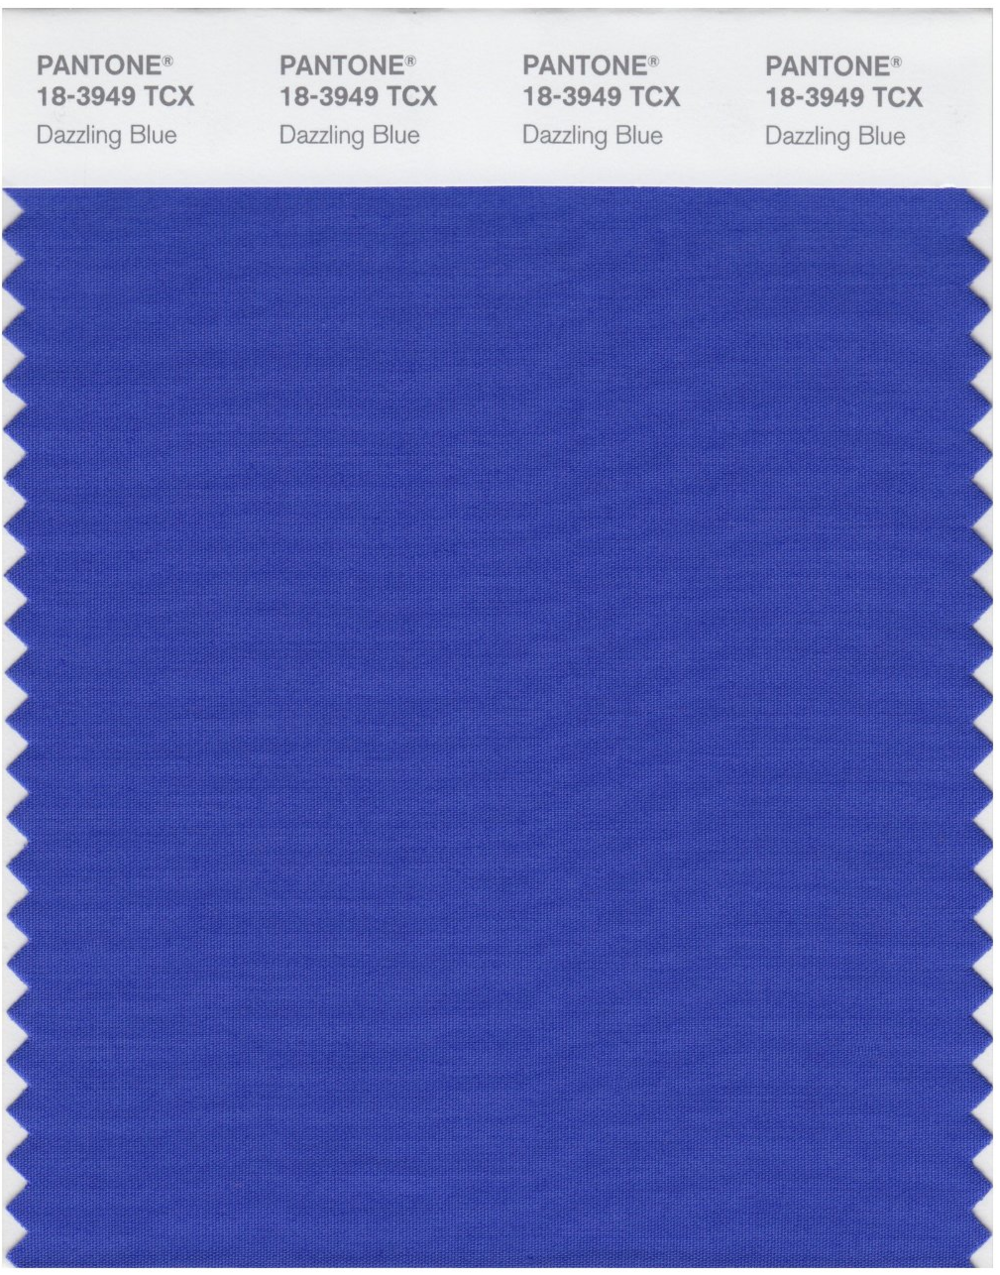 One of Pantone's Top 10 Colours for Spring 2014 'Dazzling Blue'